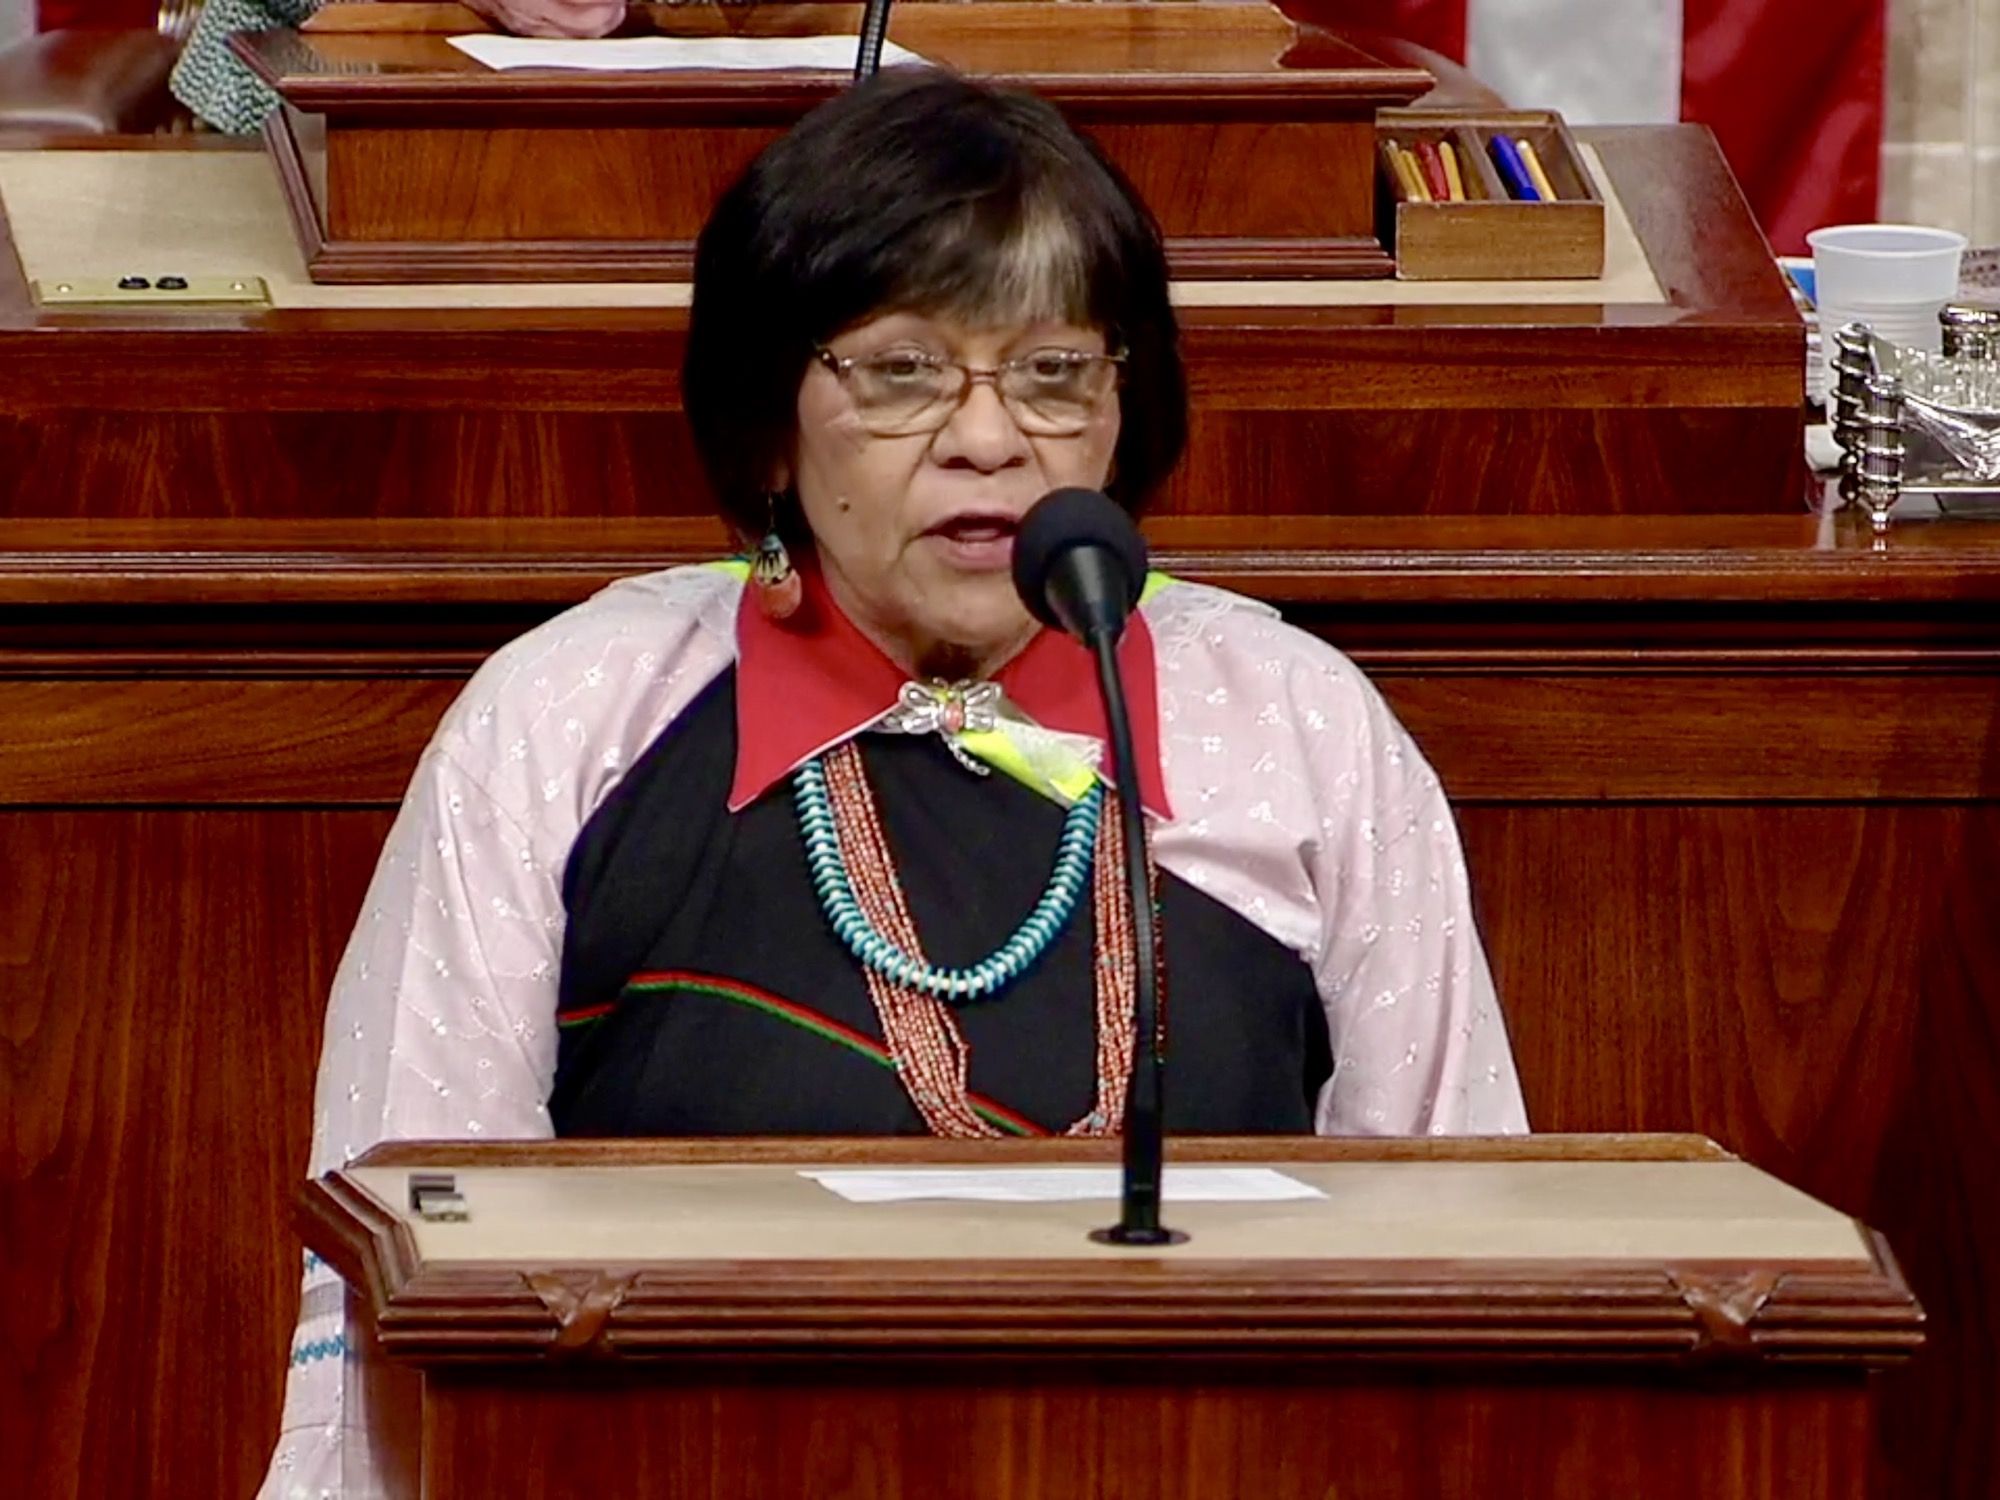 Trailblazing Pueblo woman leader delivers opening prayer in Congress